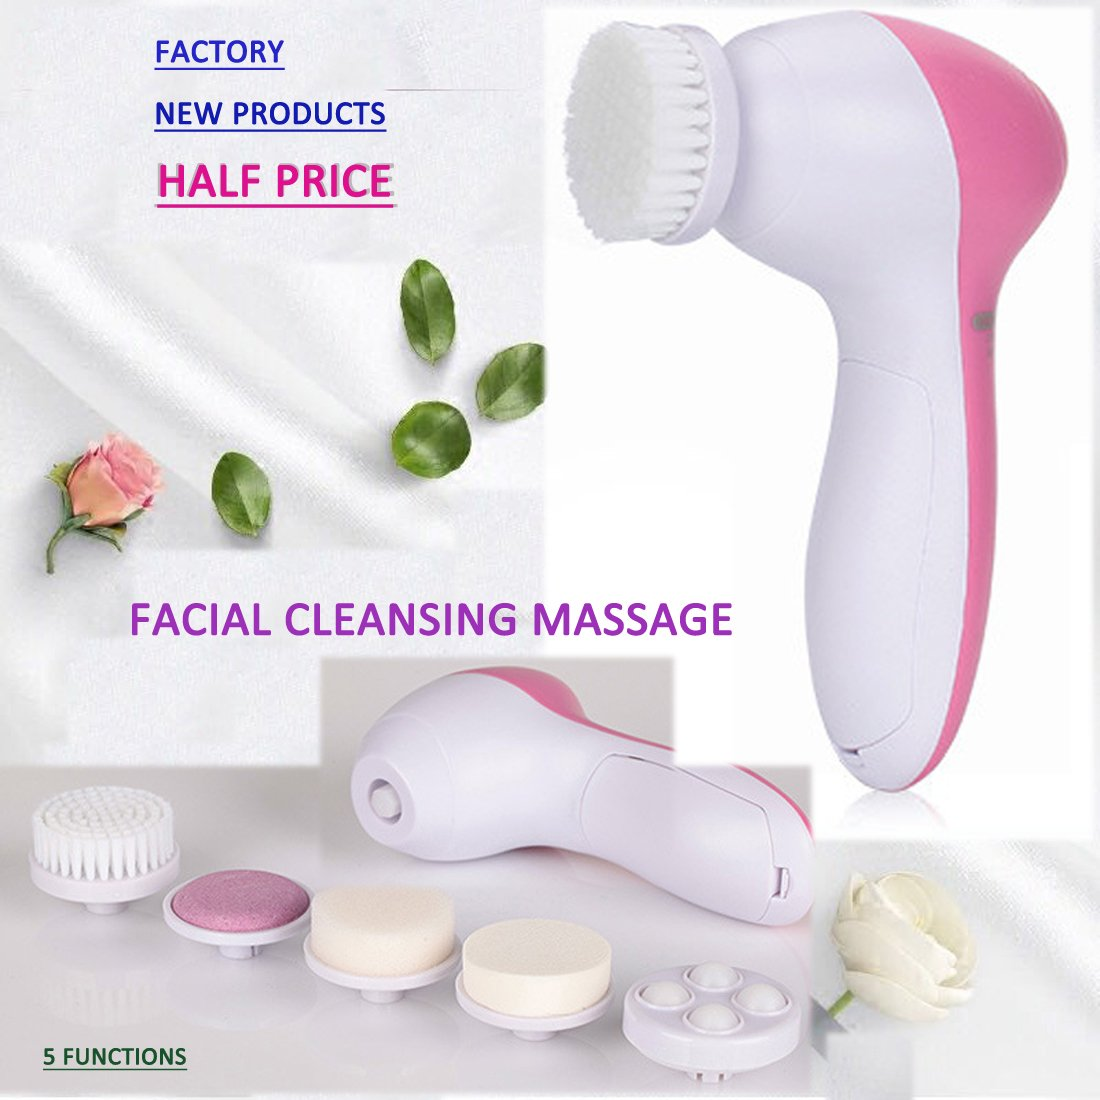 Facial Cleansing Brush Care Massager Skin Microdermabrasion Exfoliator Blackheads Body Beauty Multifunction Portable Batteries not included